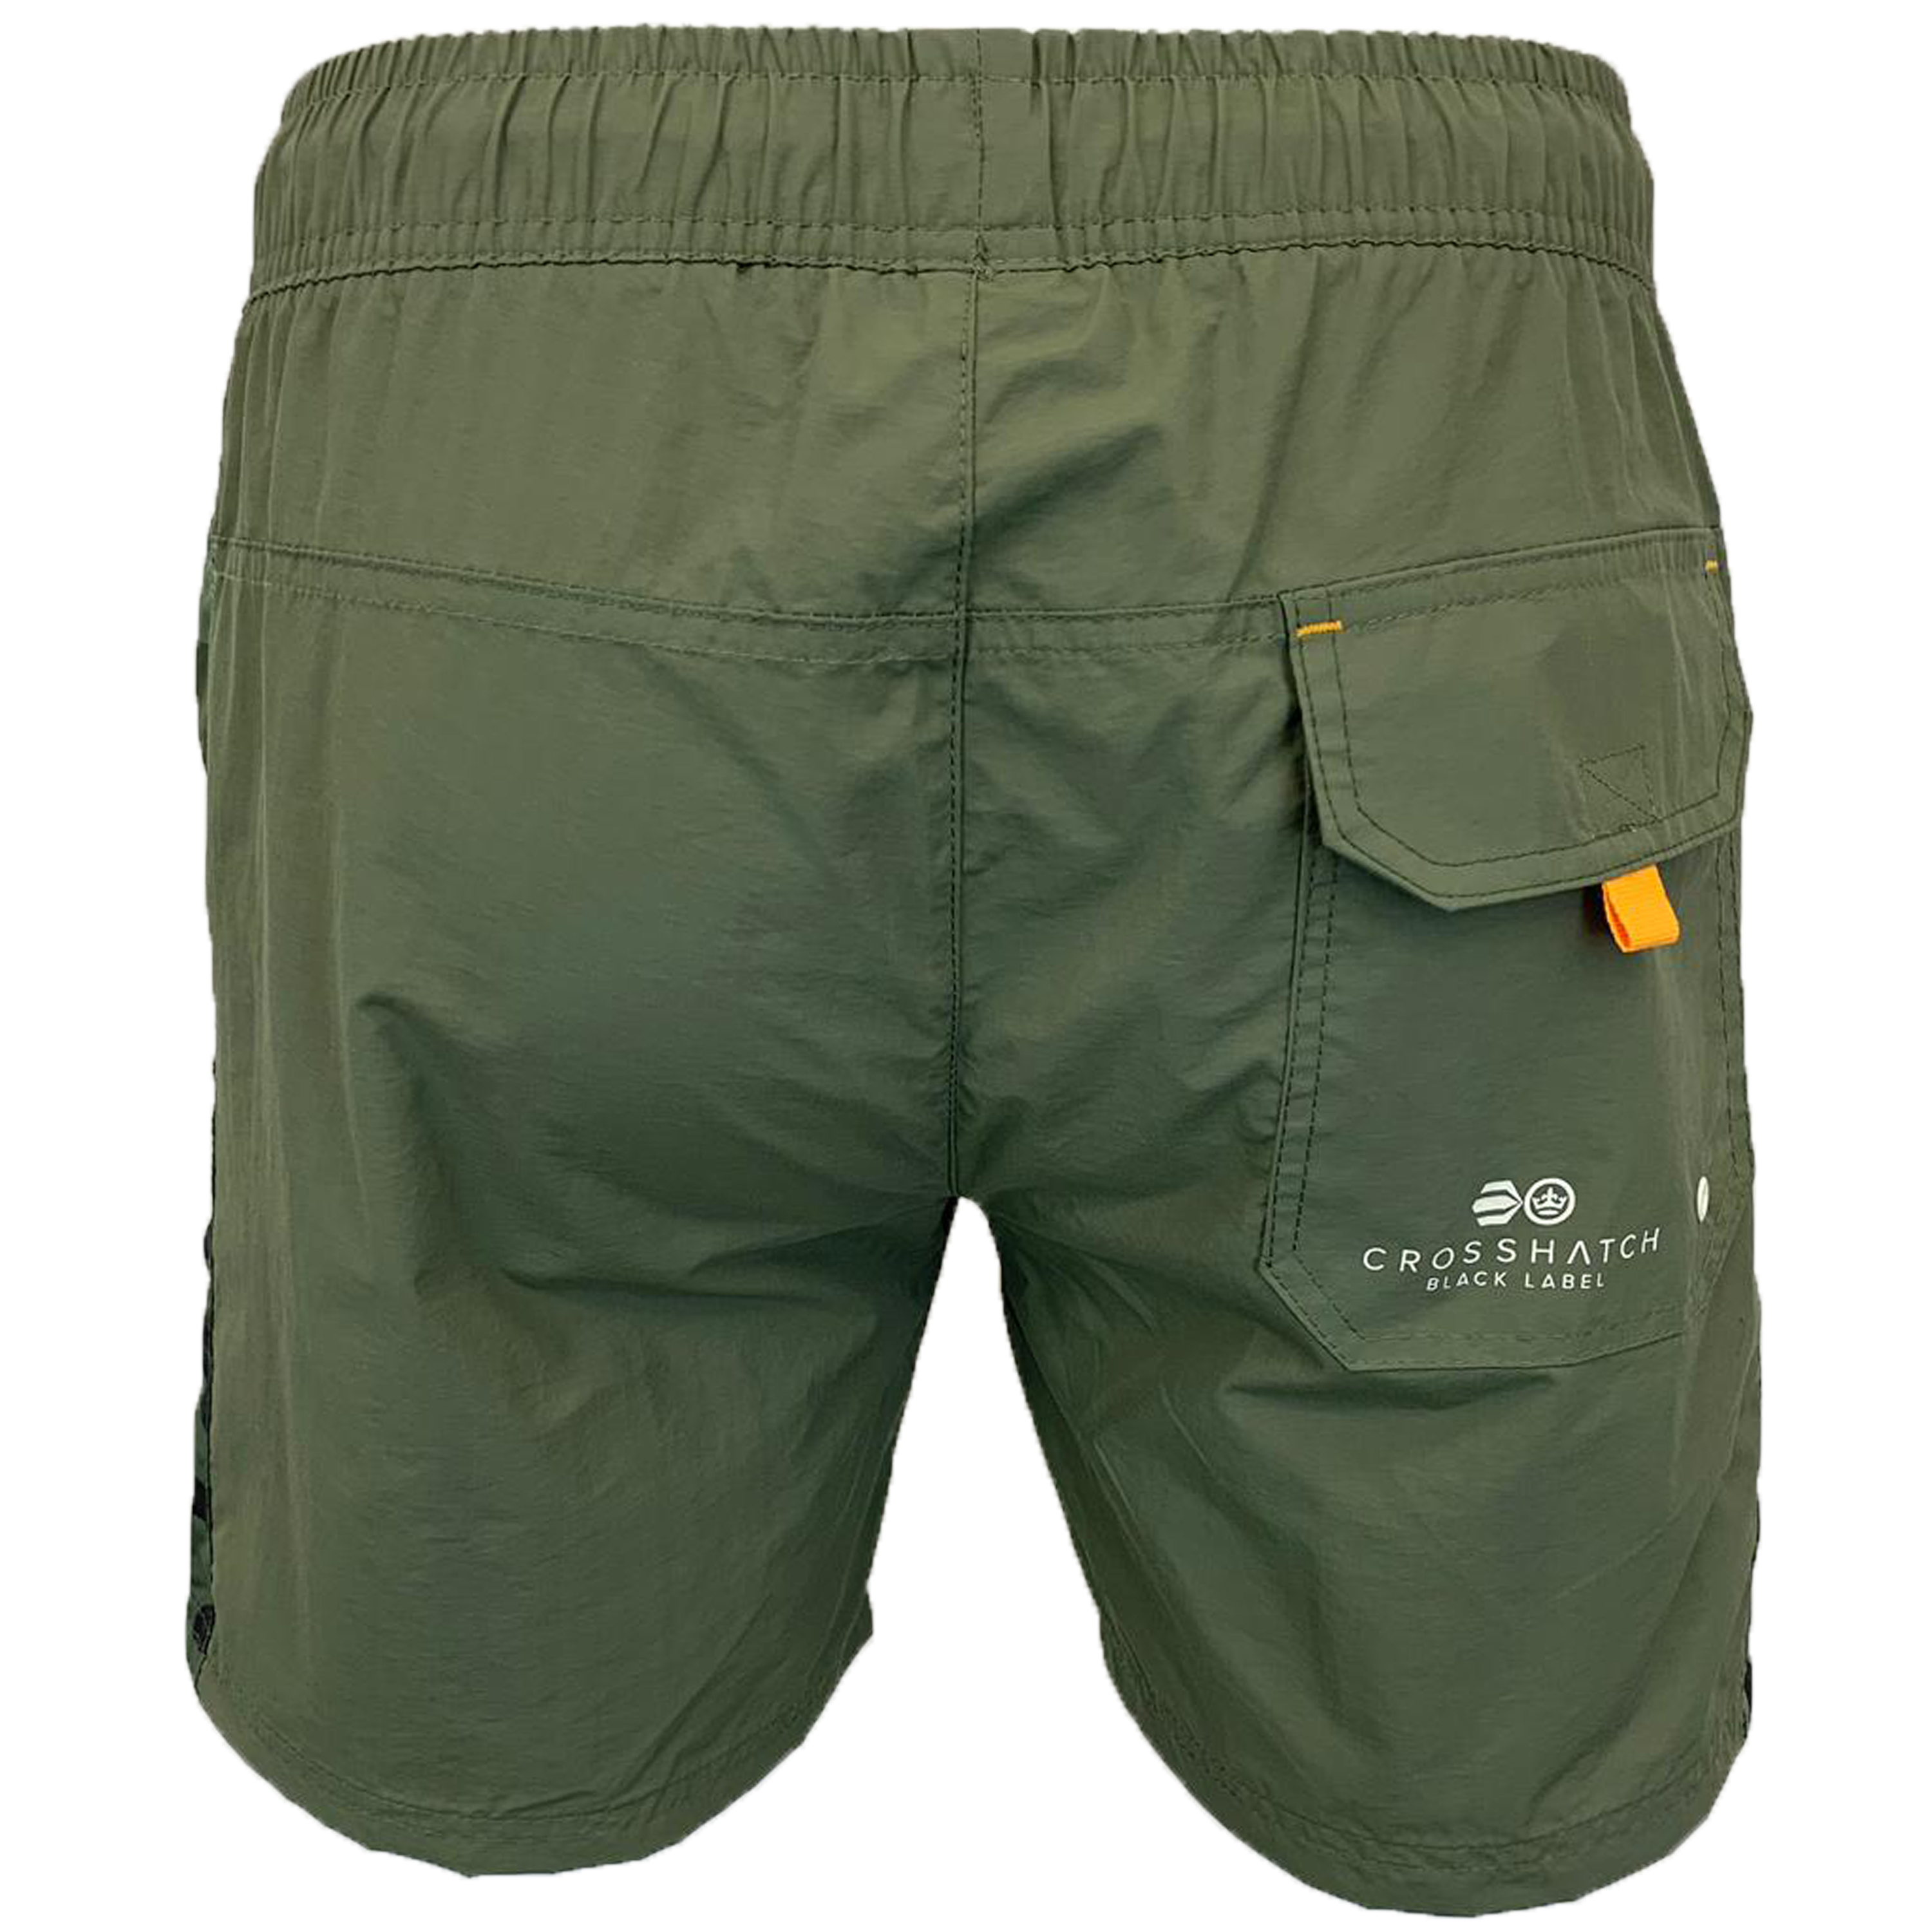 Mens-Camouflage-Swim-Shorts-Crosshatch-Army-Military-Knee-Length-Casual-Summer thumbnail 21